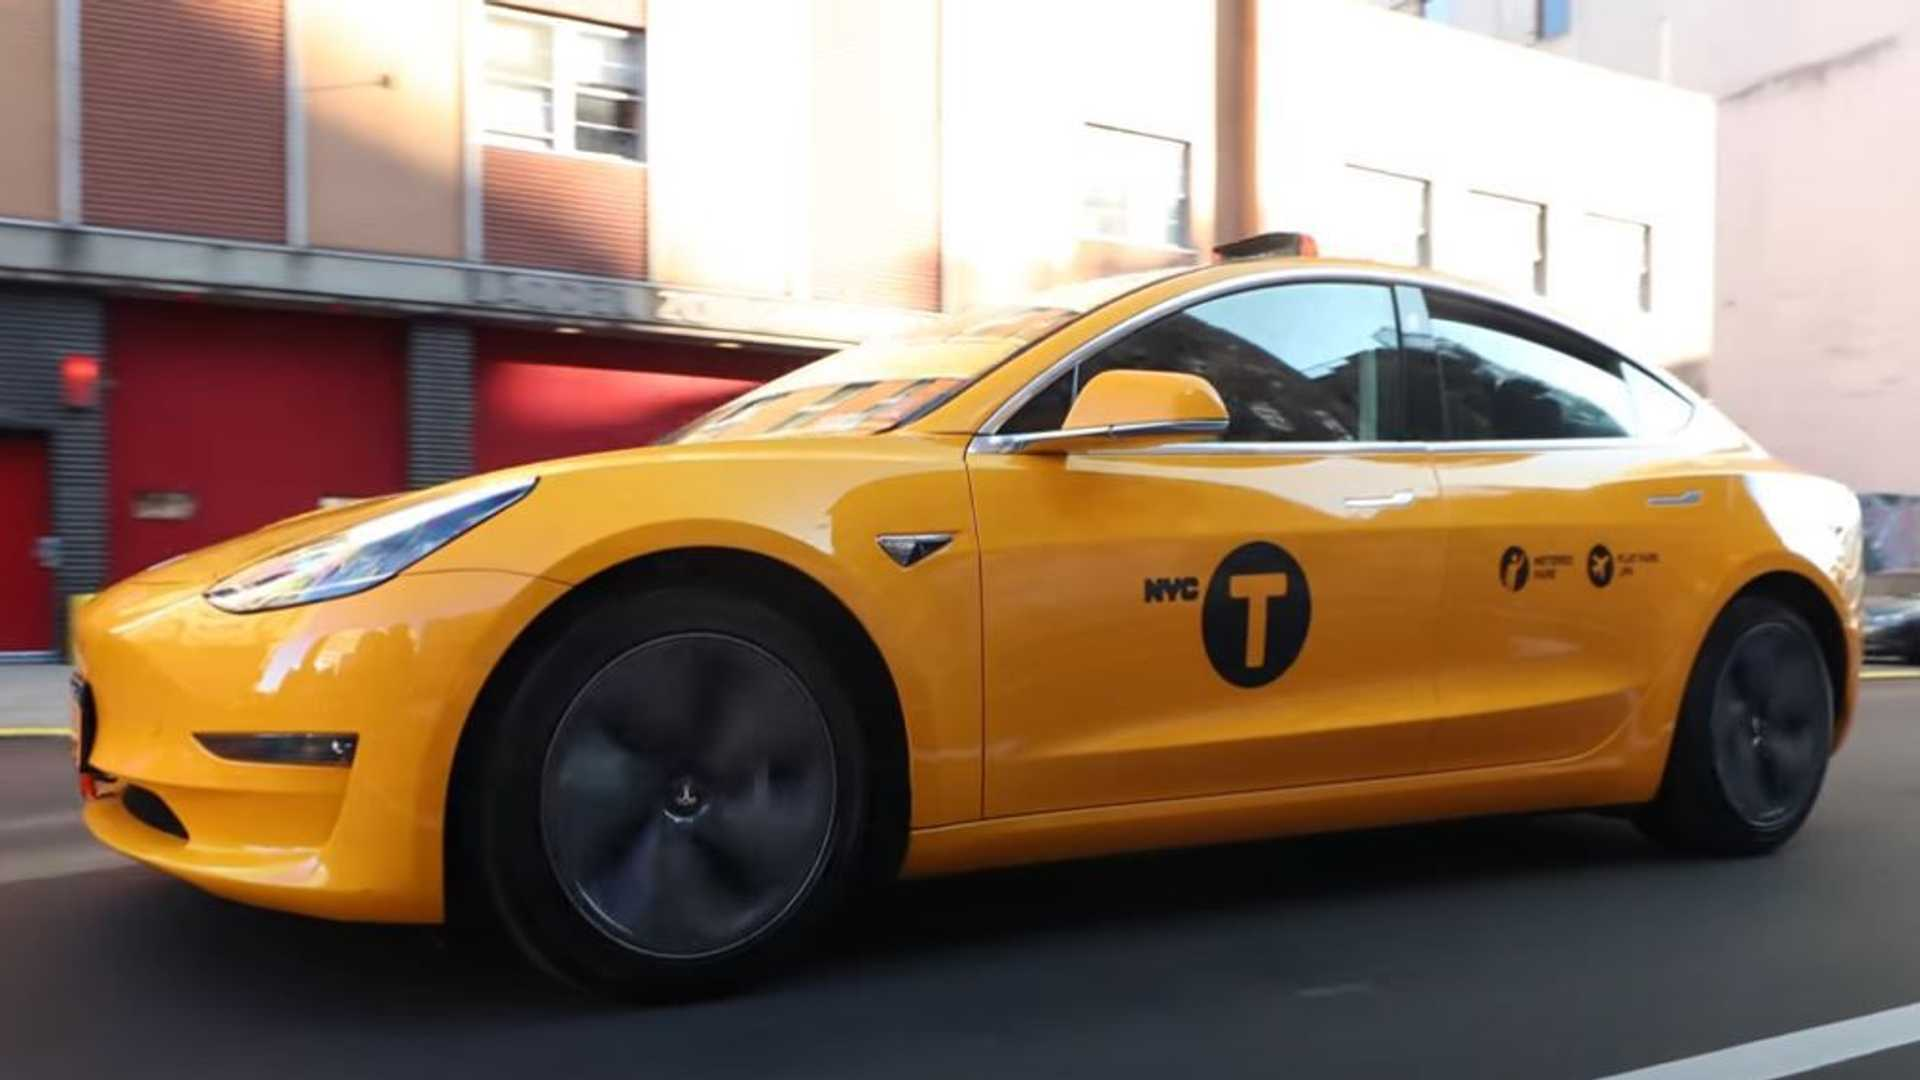 New York City's Tesla Model 3 Taxi Cab Out Of Service Following Crash